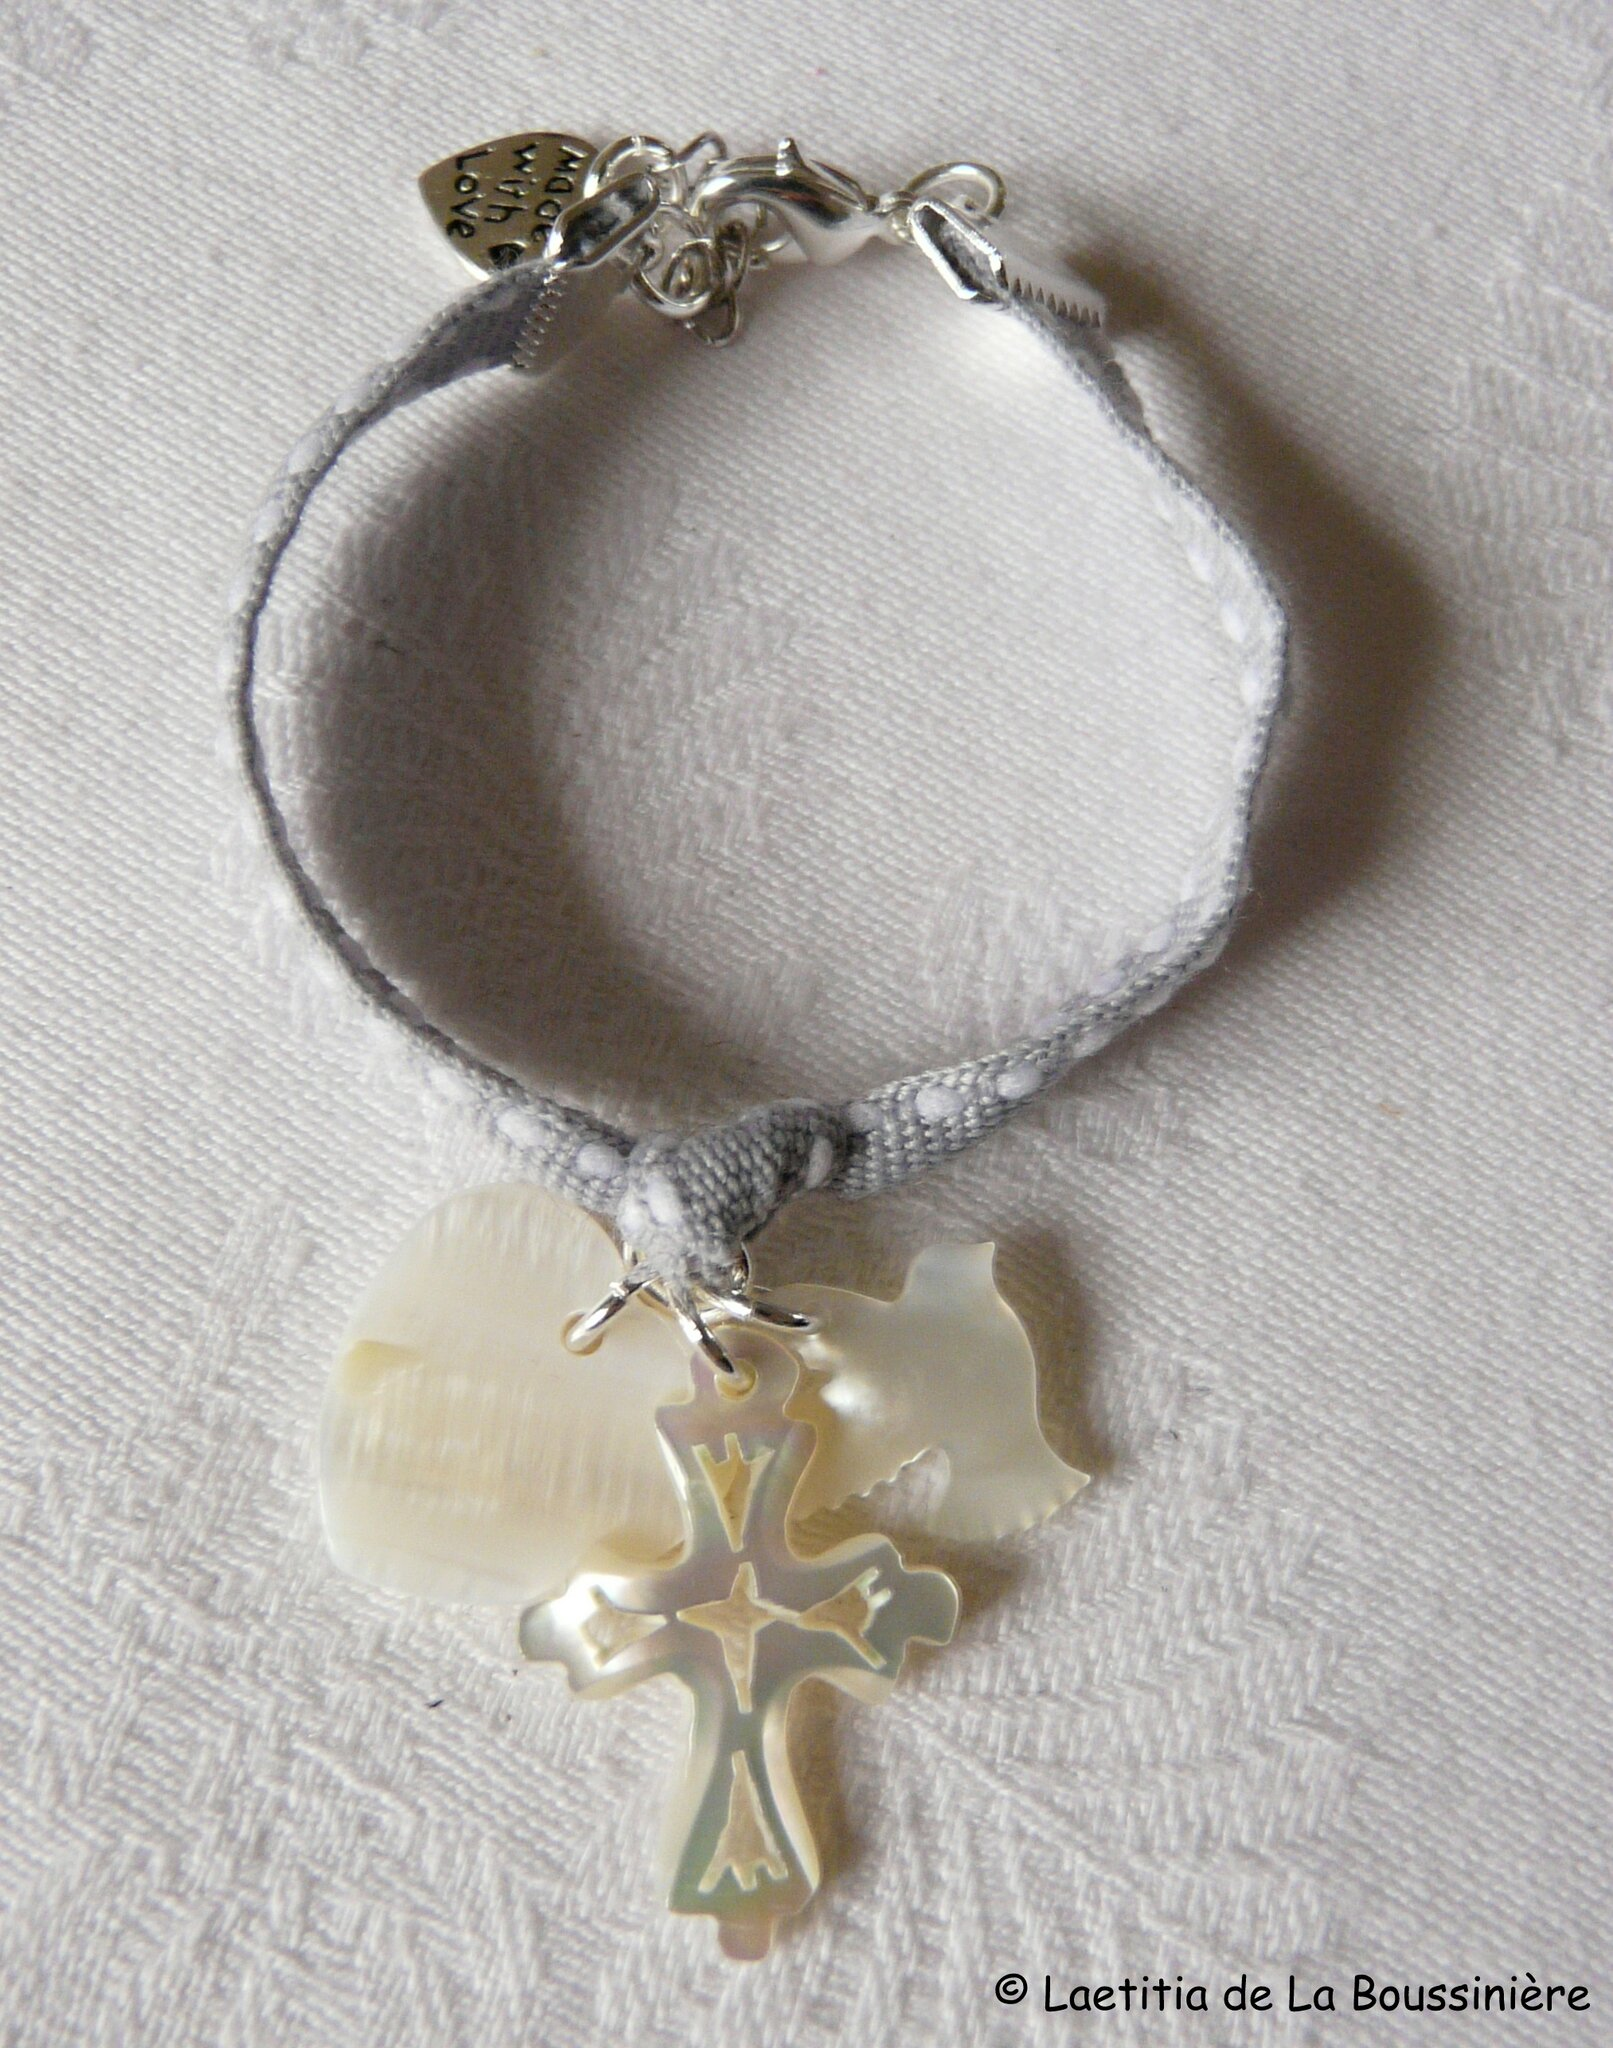 Bracelet Sainte Trinité (sur ruban) - 30 € en simple tour ; 33 € en double tour